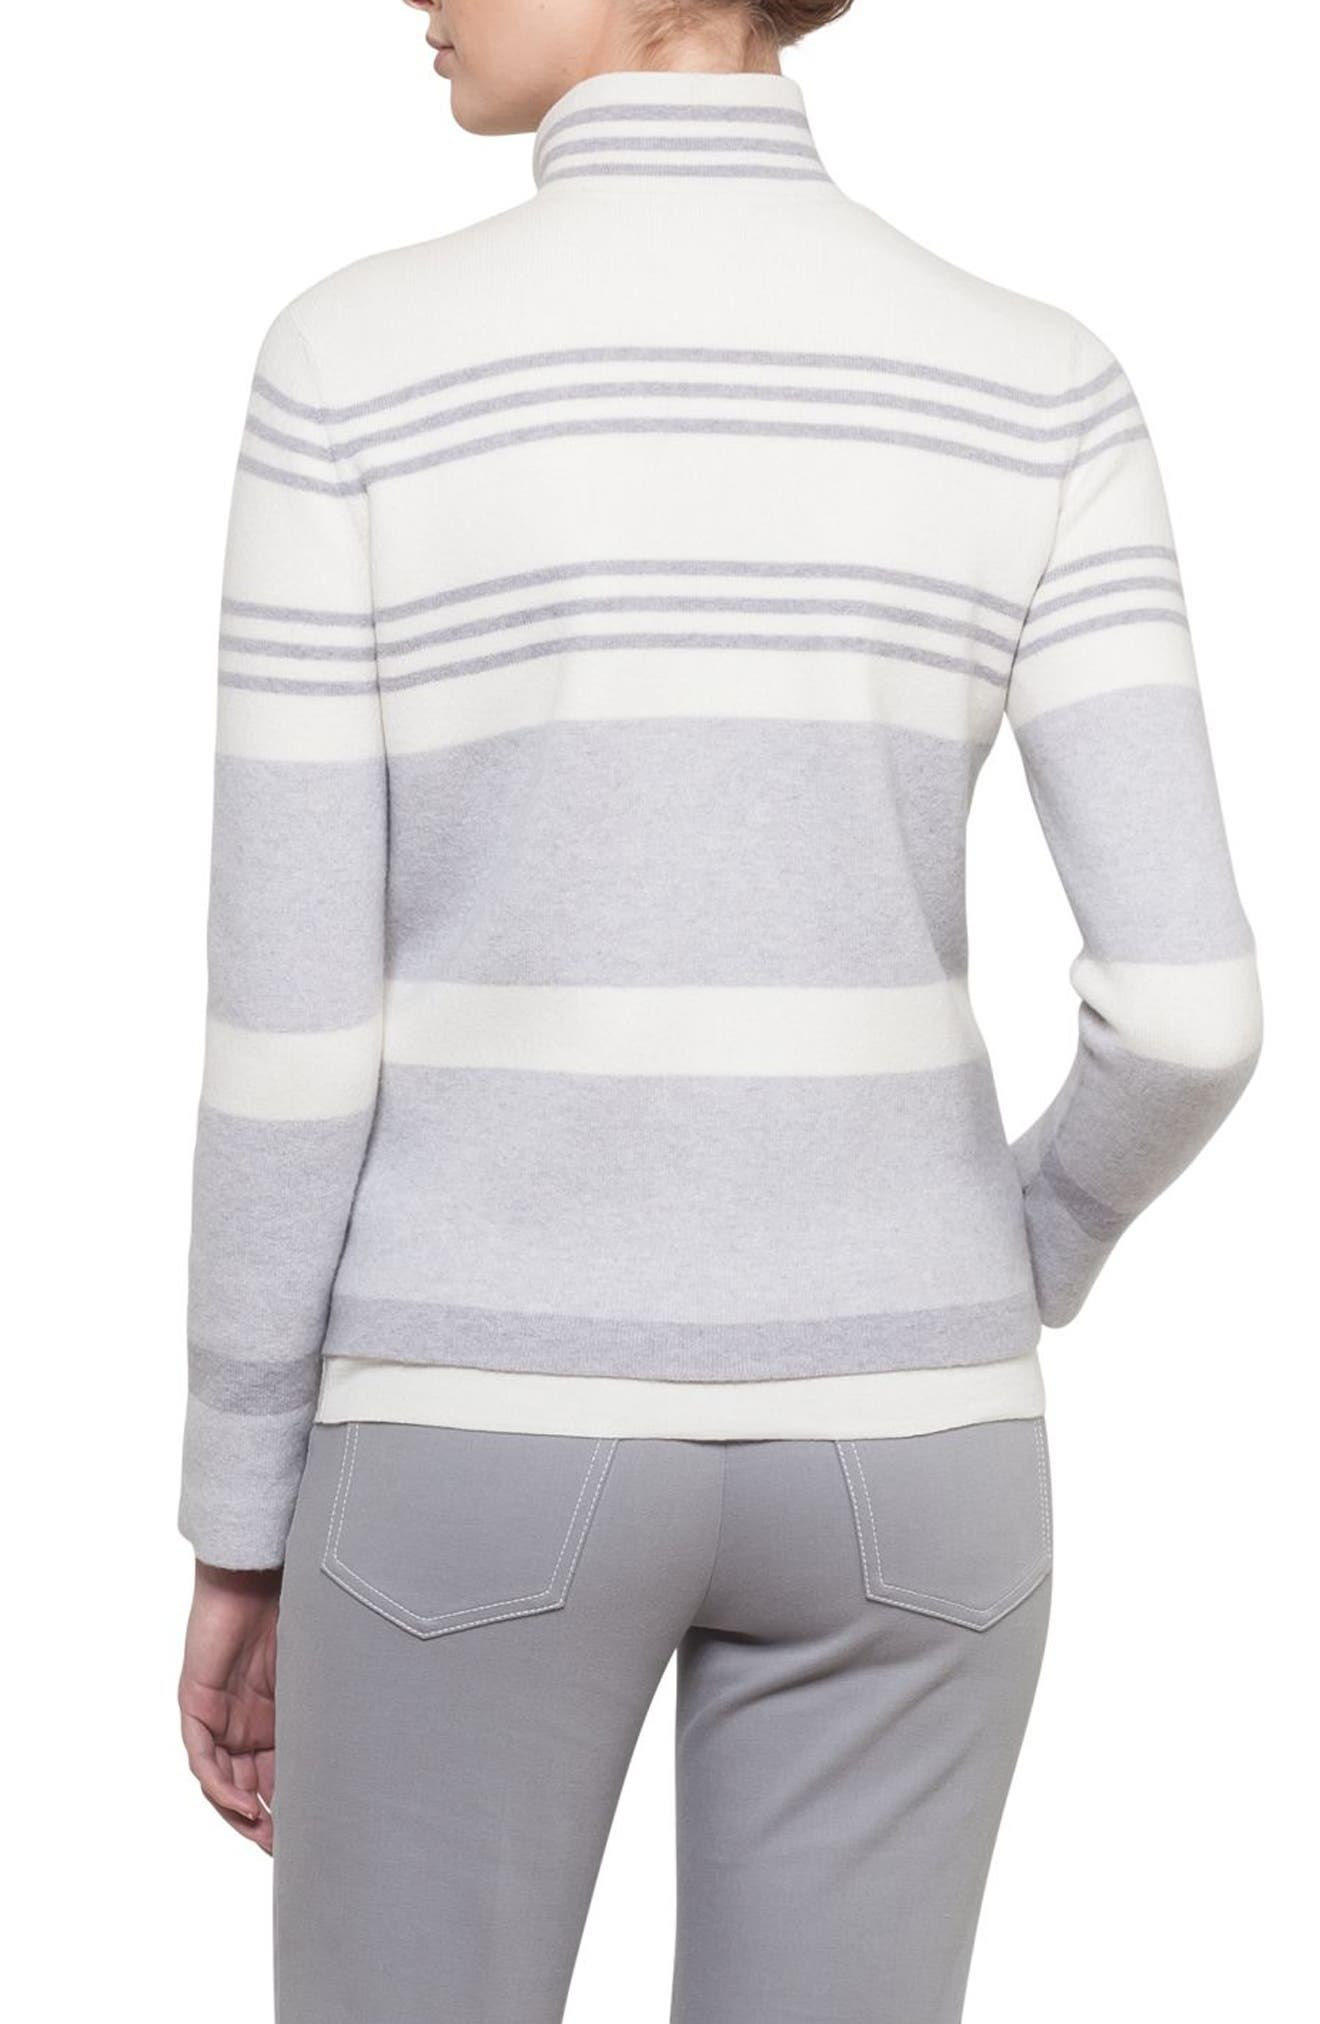 Stripe Knit Cashmere Jacket,                             Alternate thumbnail 2, color,                             Gravel/ Paper